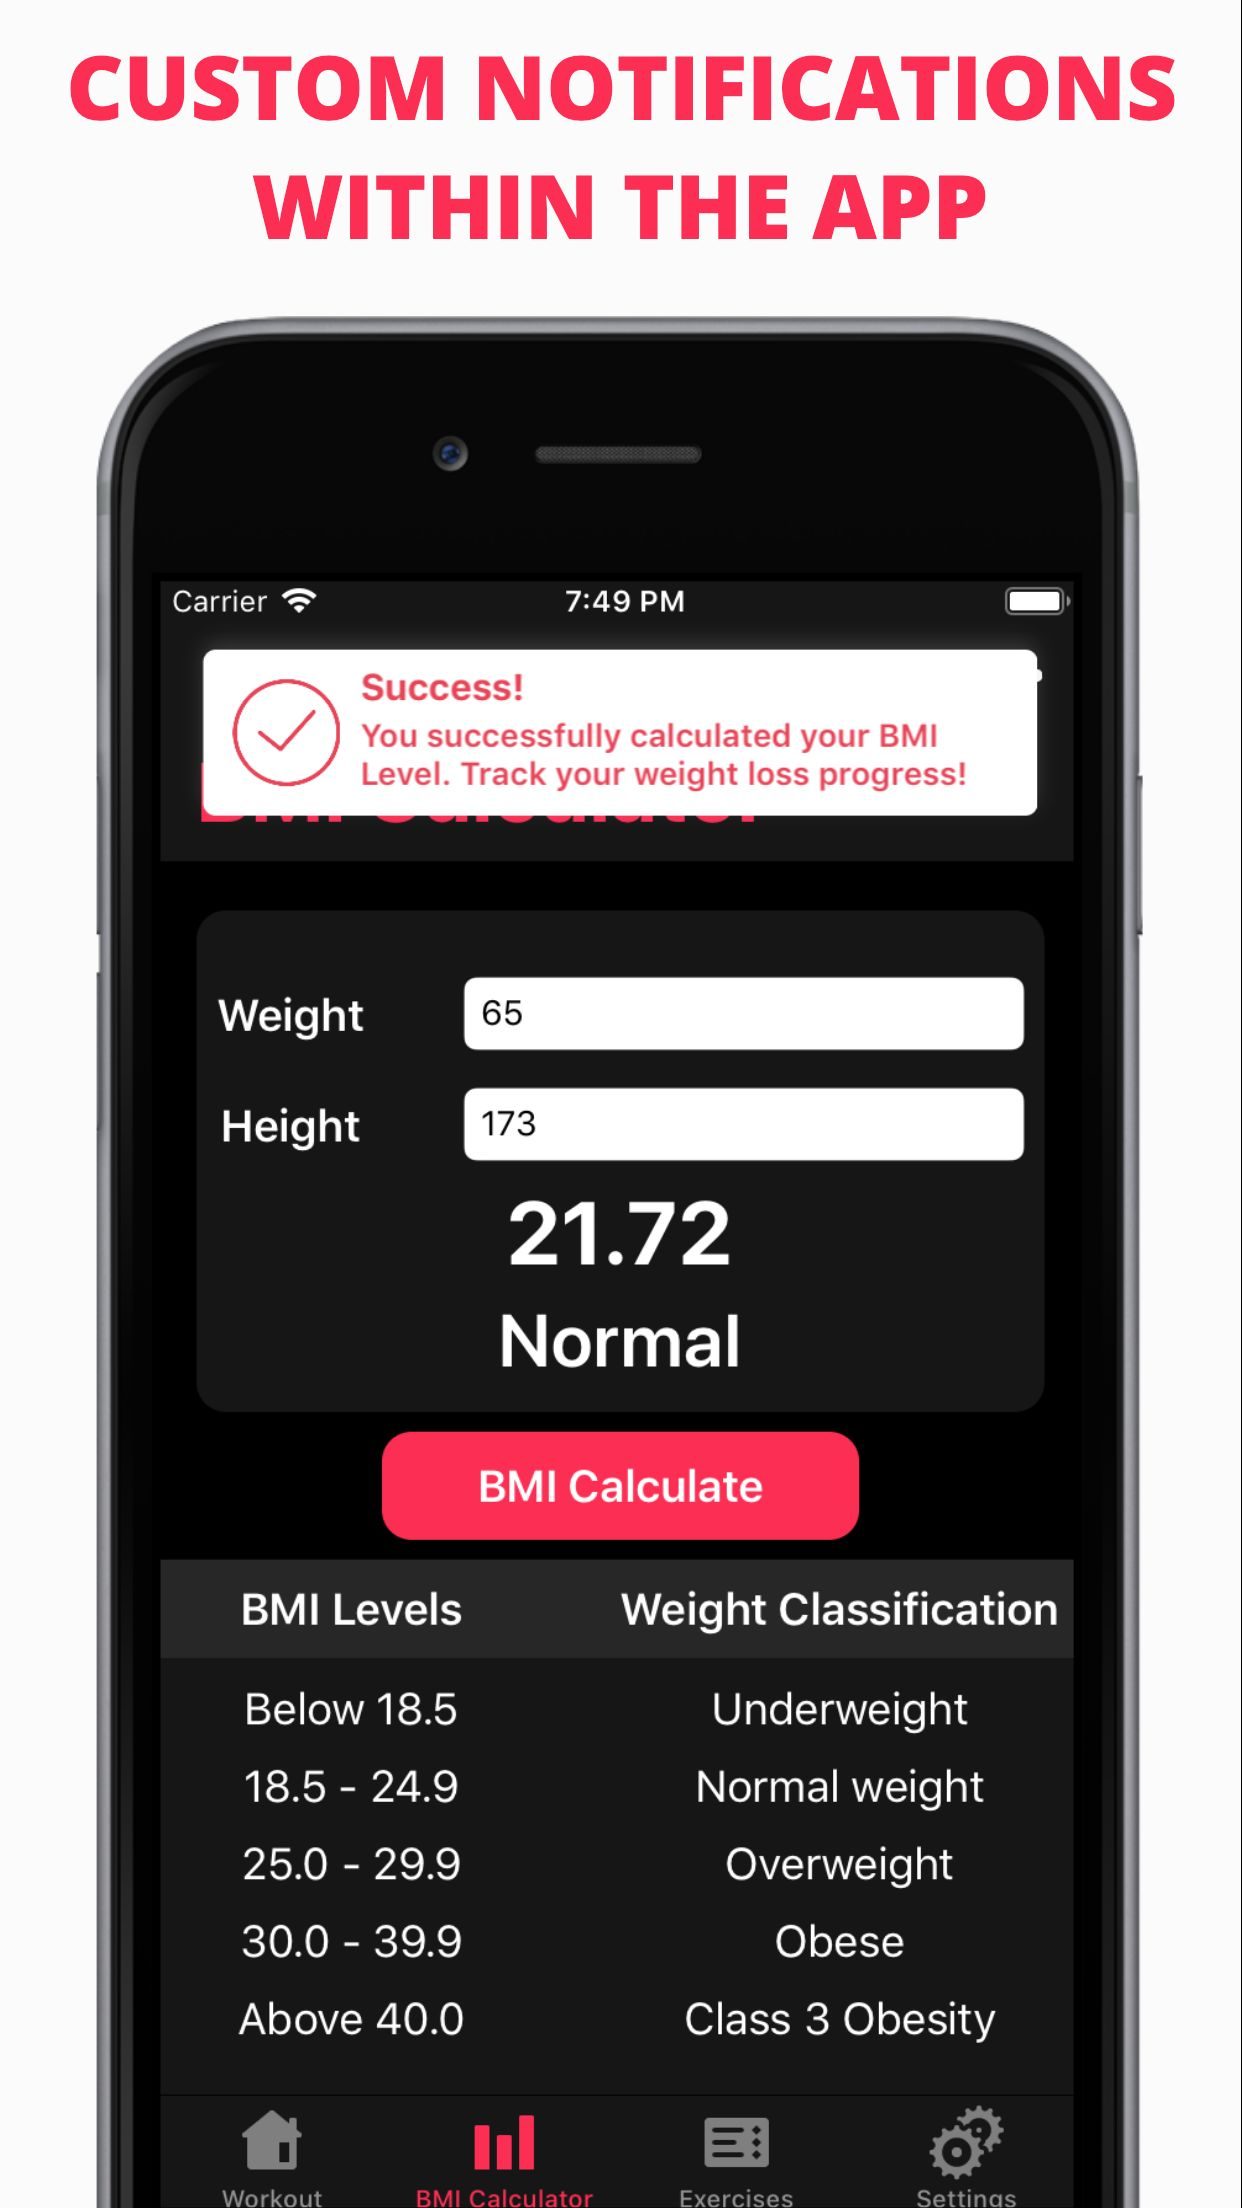 Easy Workout - iOS Fitness Application  Screenshot 6